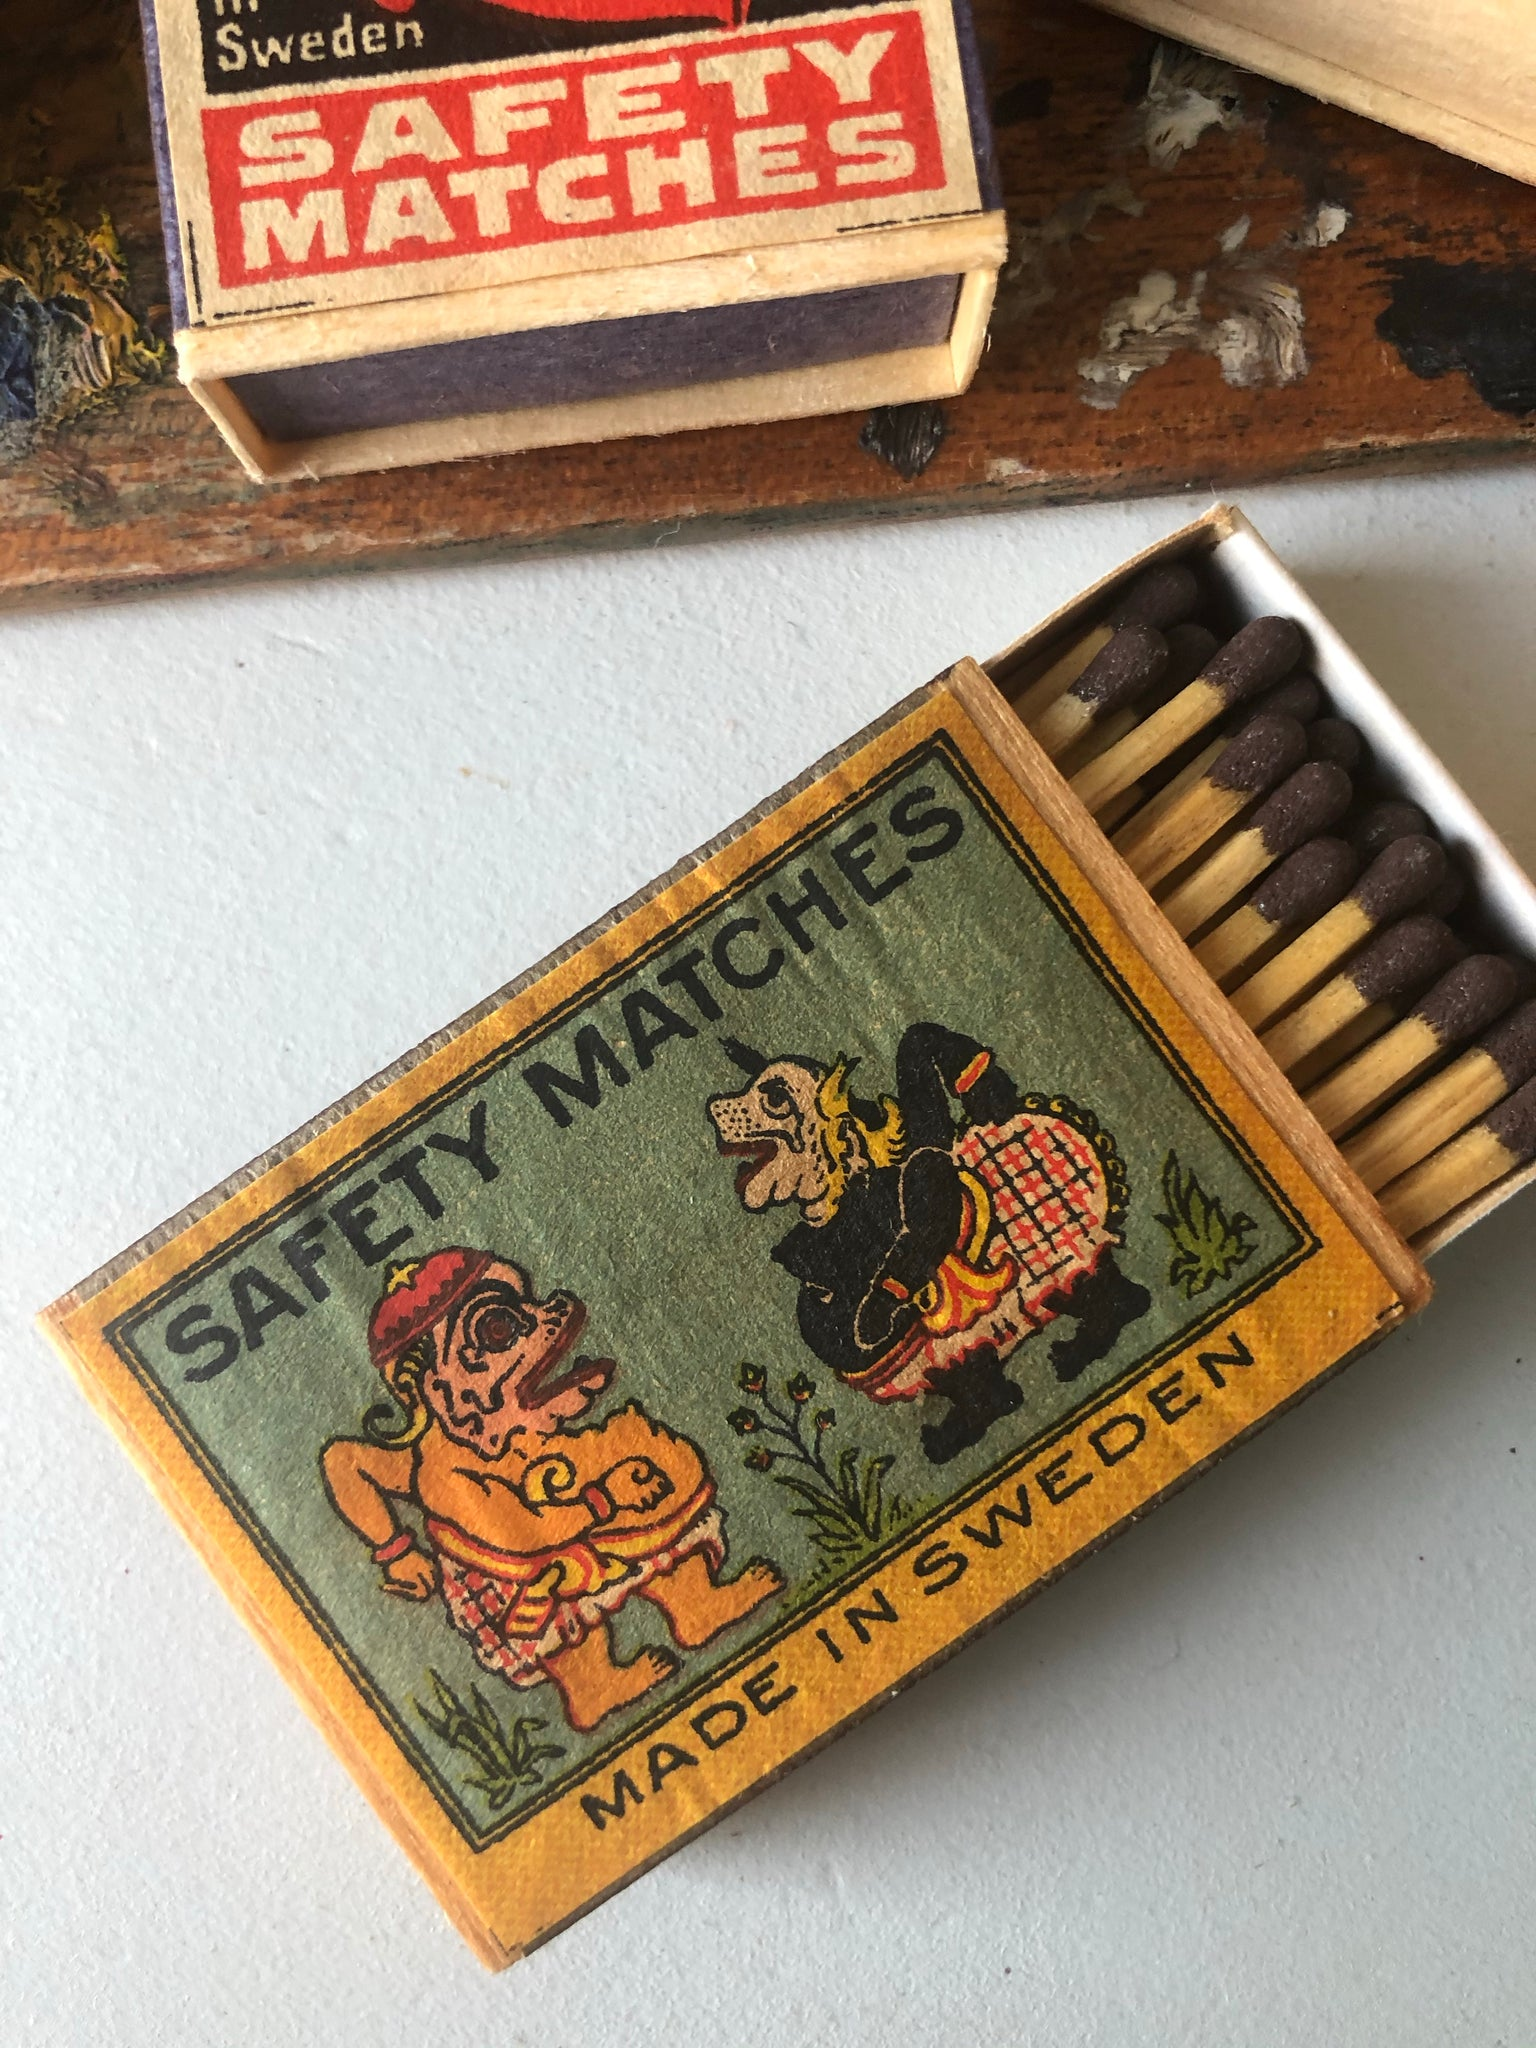 Box of matches, Made in Sweden